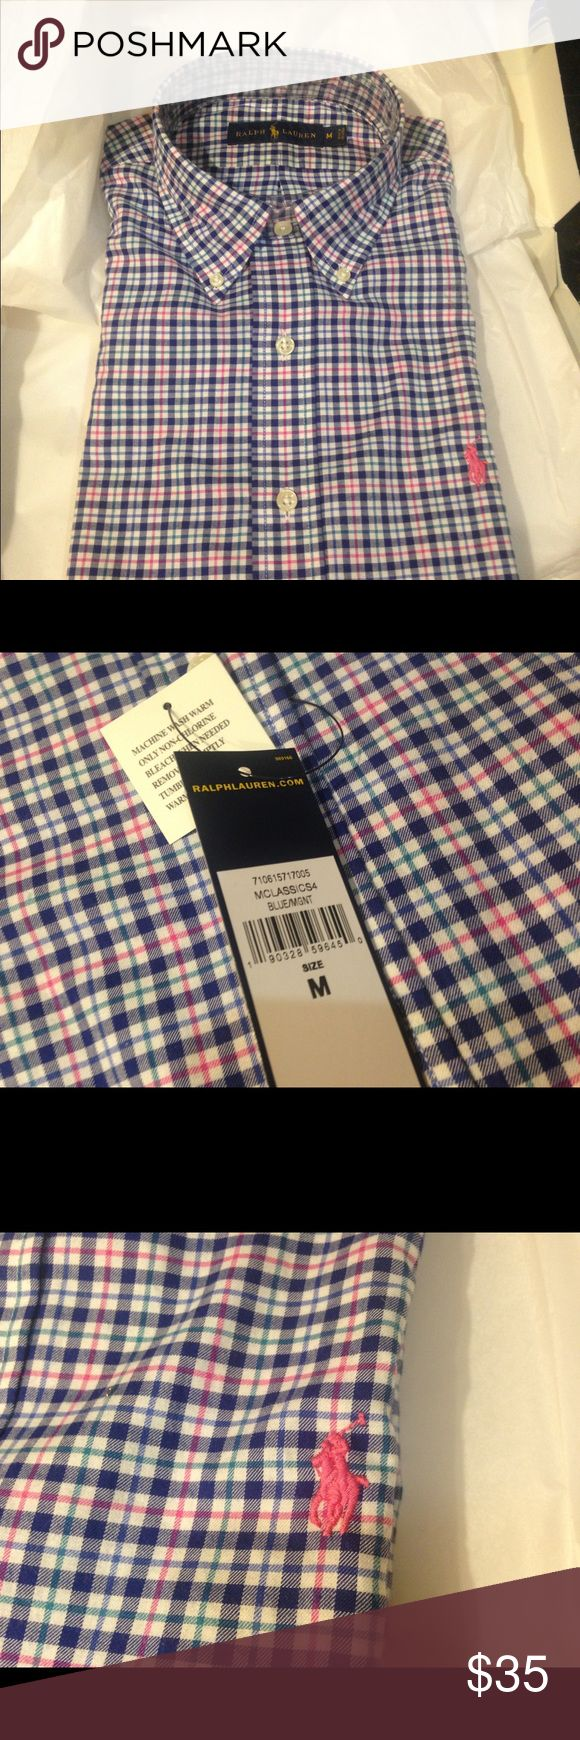 Men's long sleeve polo shirt NWT with tags. Men's long sleeve Polo shirt new with tags. Shirt has navy blue, green, and pink strips with a pink polo emblem. Polo by Ralph Lauren Shirts Polos